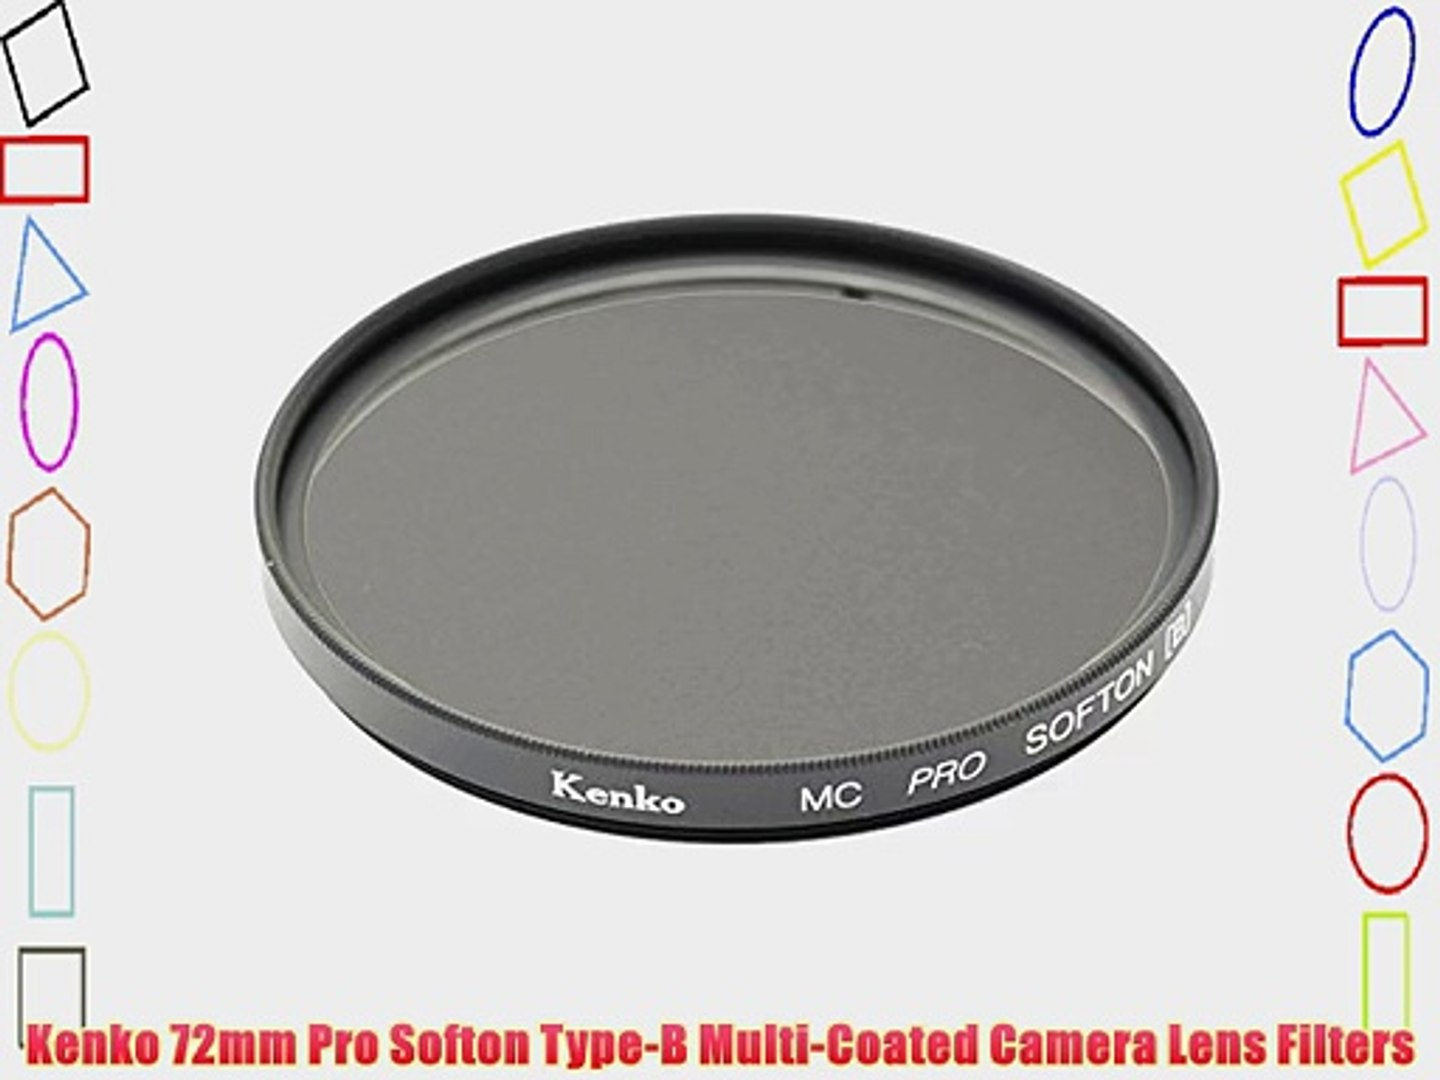 Kenko 62mm C12 Professional Multi-Coated Camera Lens Filters